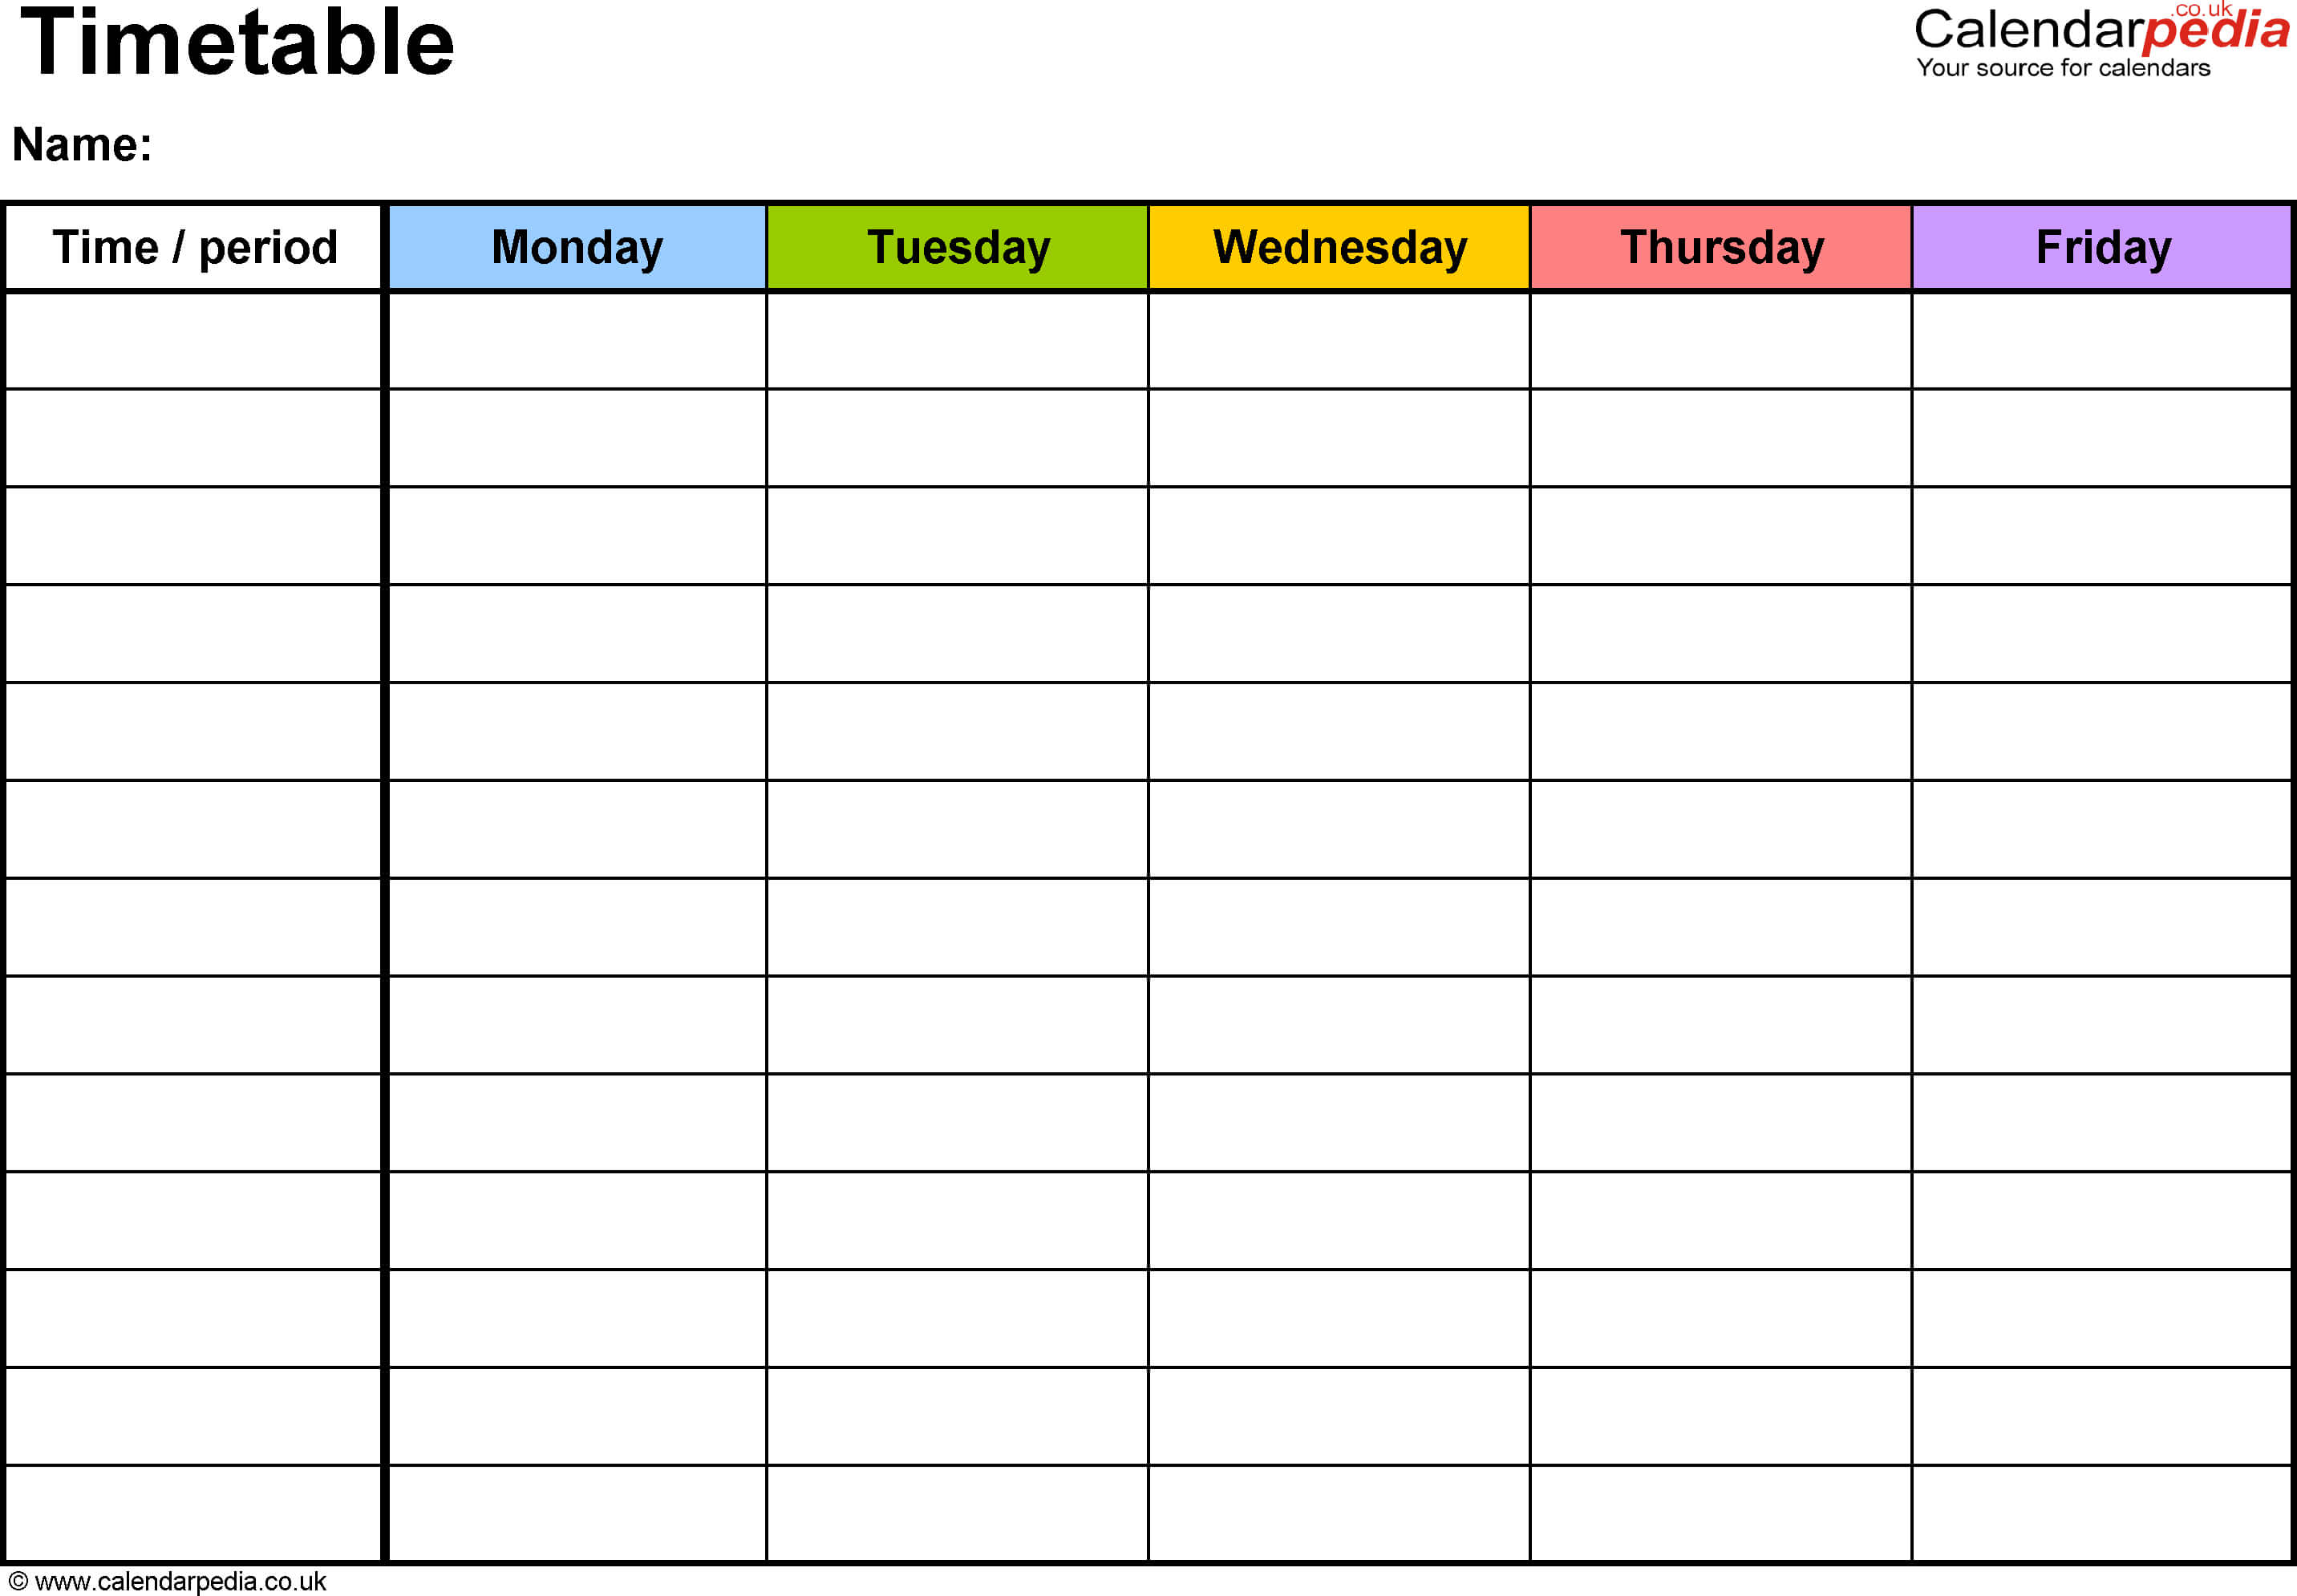 Pdf Timetable Template 2: Landscape Format, A4, 1 Page Regarding Blank Revision Timetable Template